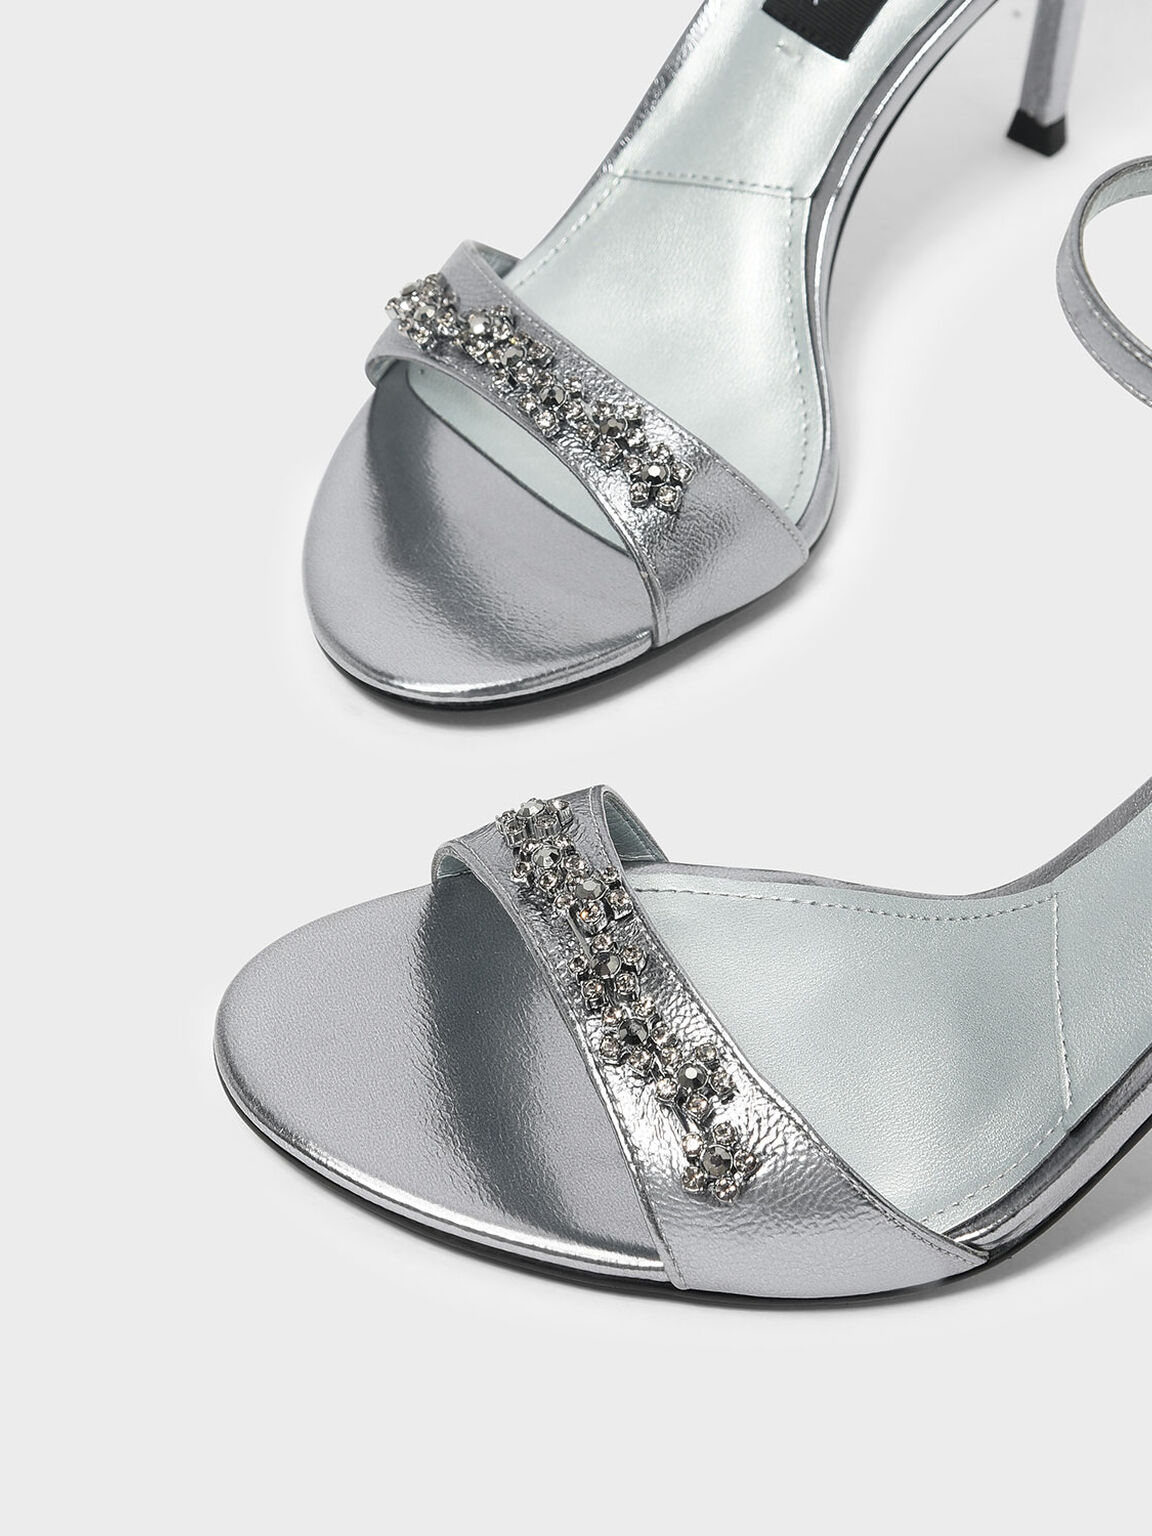 Floral Embellishment Leather Heeled Sandals, Pewter, hi-res